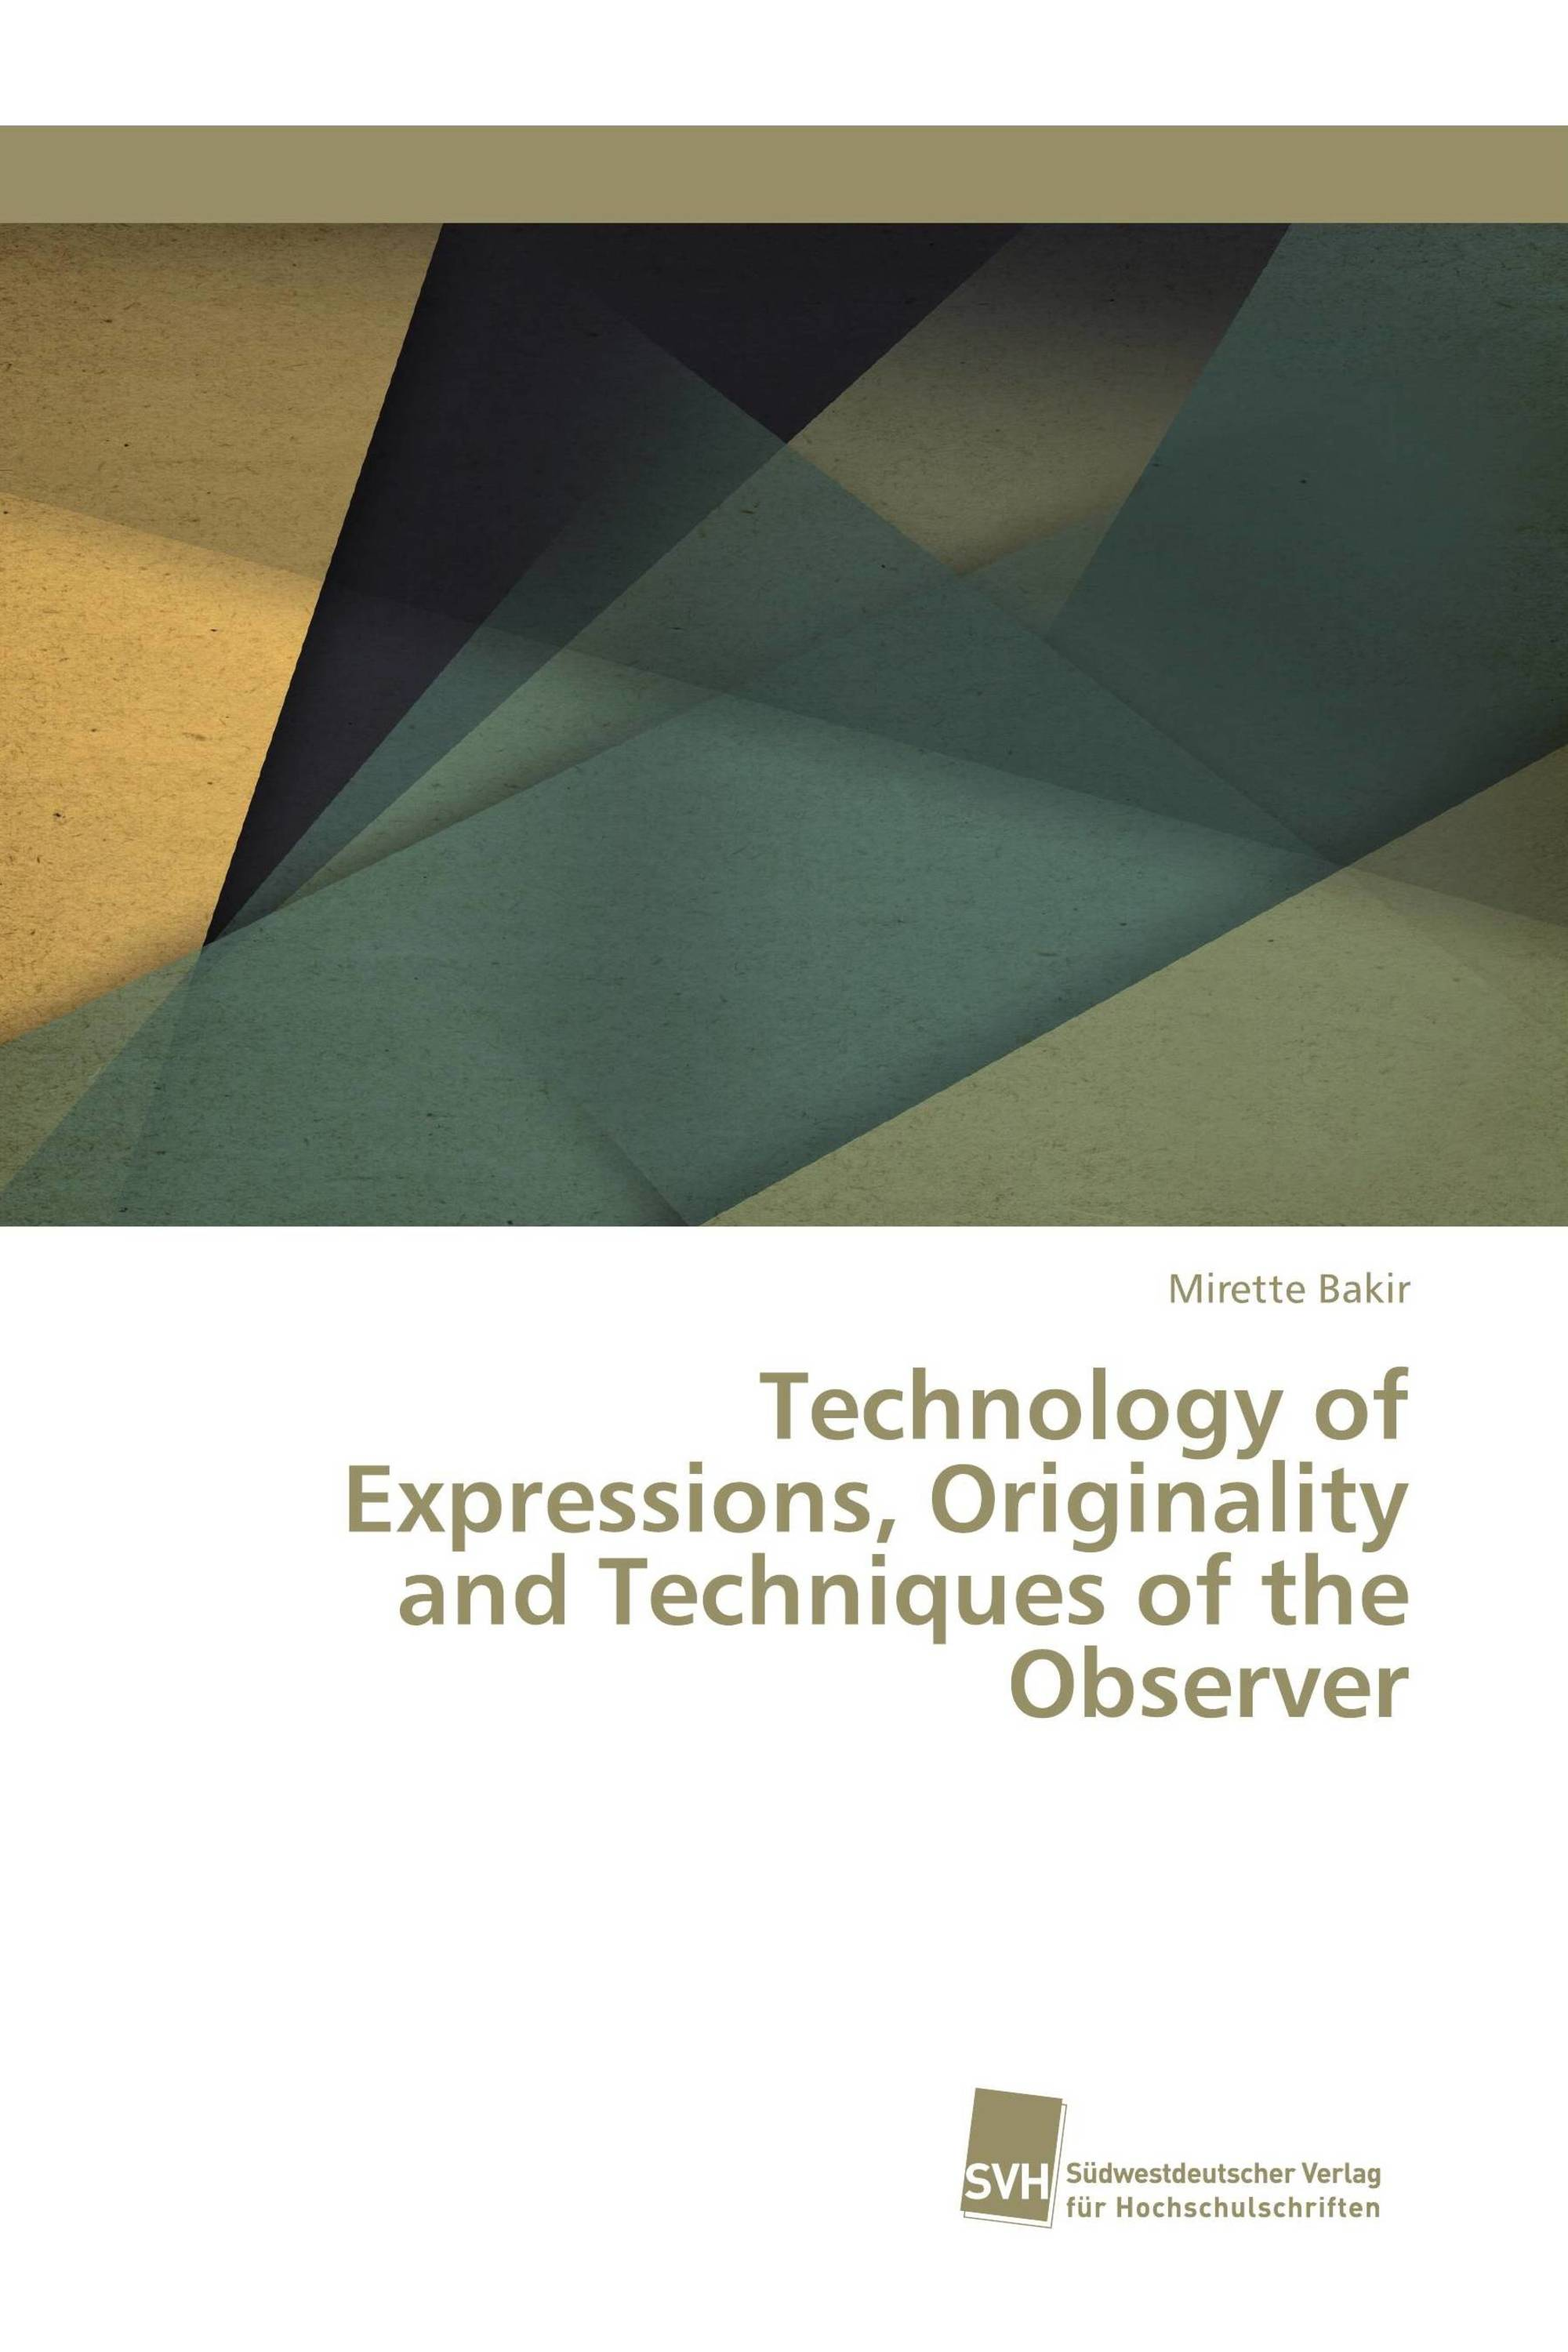 Technology of Expressions, Originality and Techniques of the Observer